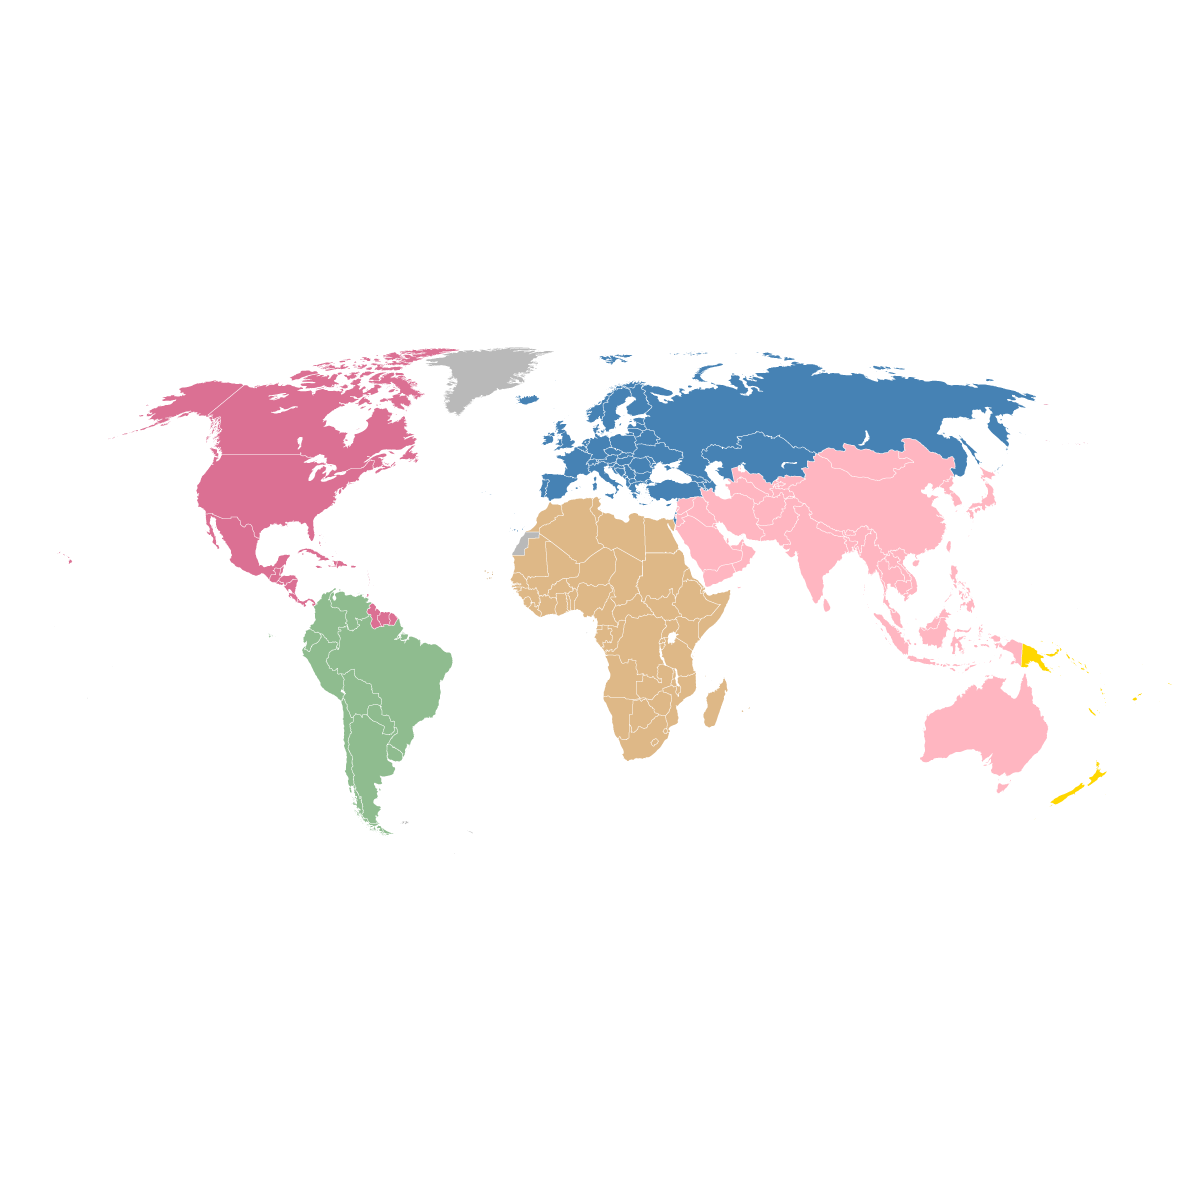 World map silhouette vector at getdrawings free for personal 1200x1200 fifa world map vector graphic of confederation members free gumiabroncs Image collections